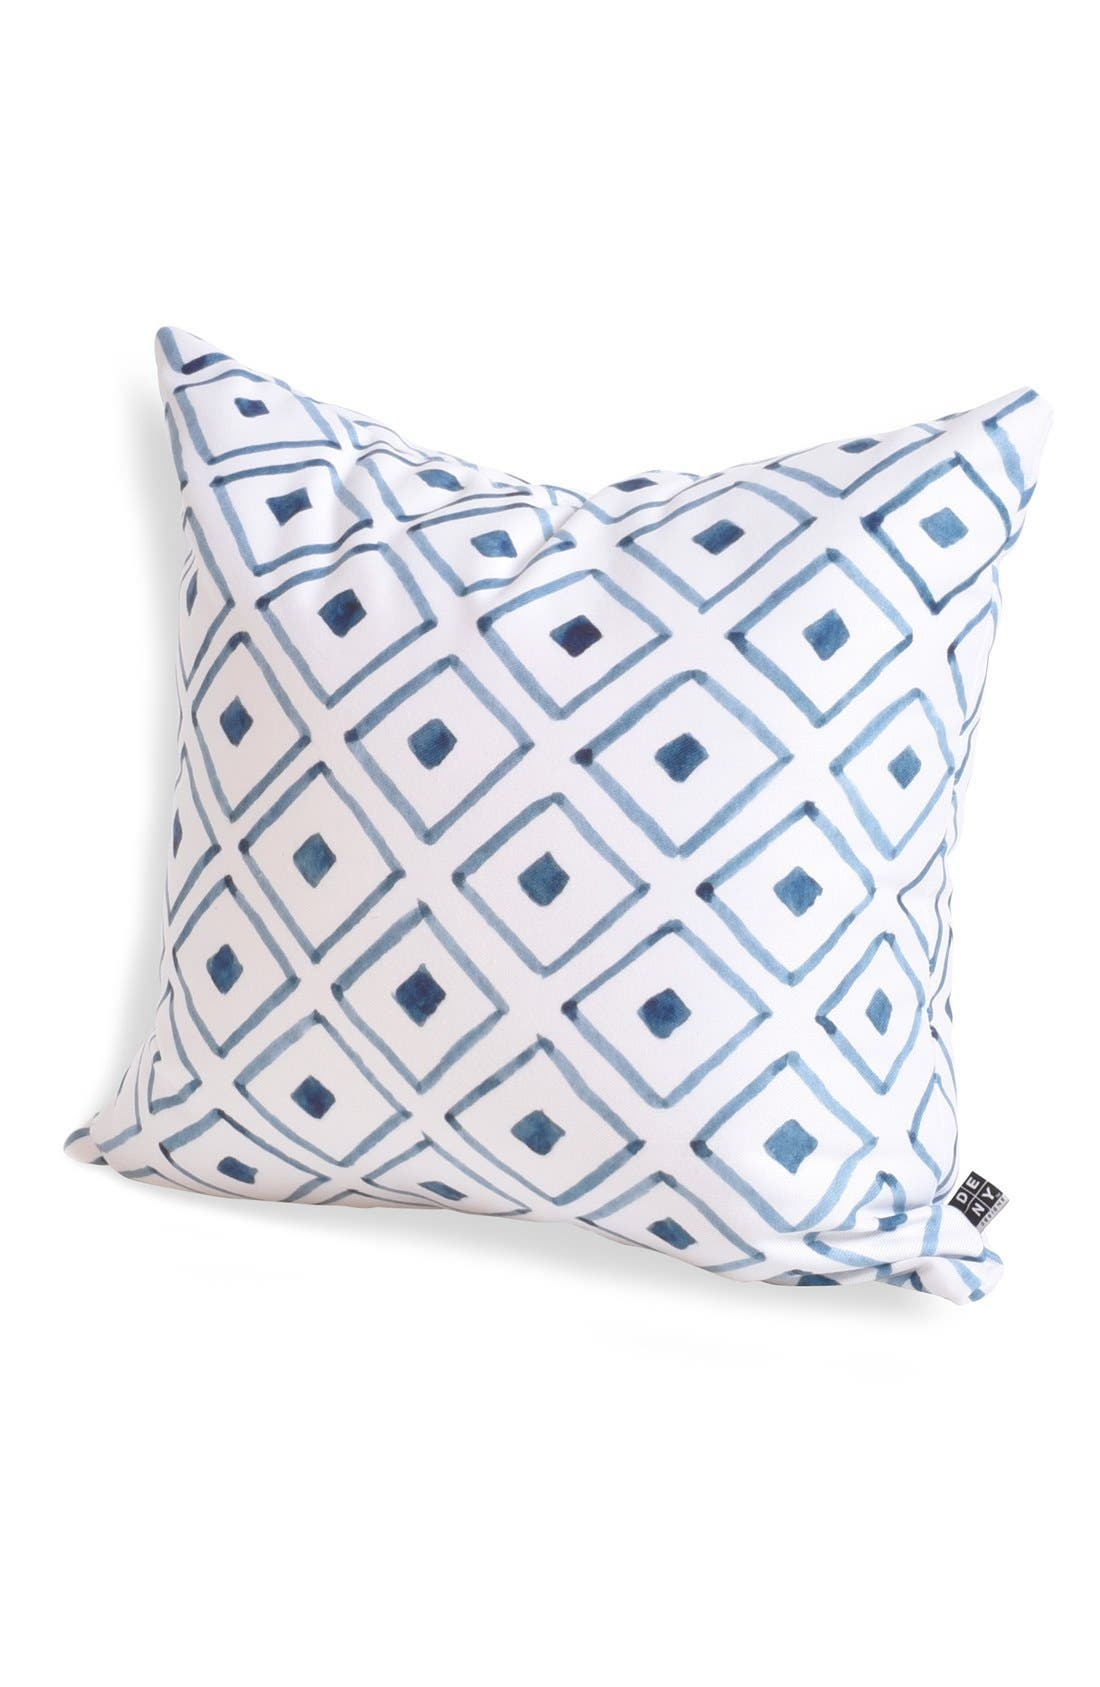 DENY DESIGNS 'Social Proper Ascot' Pillow